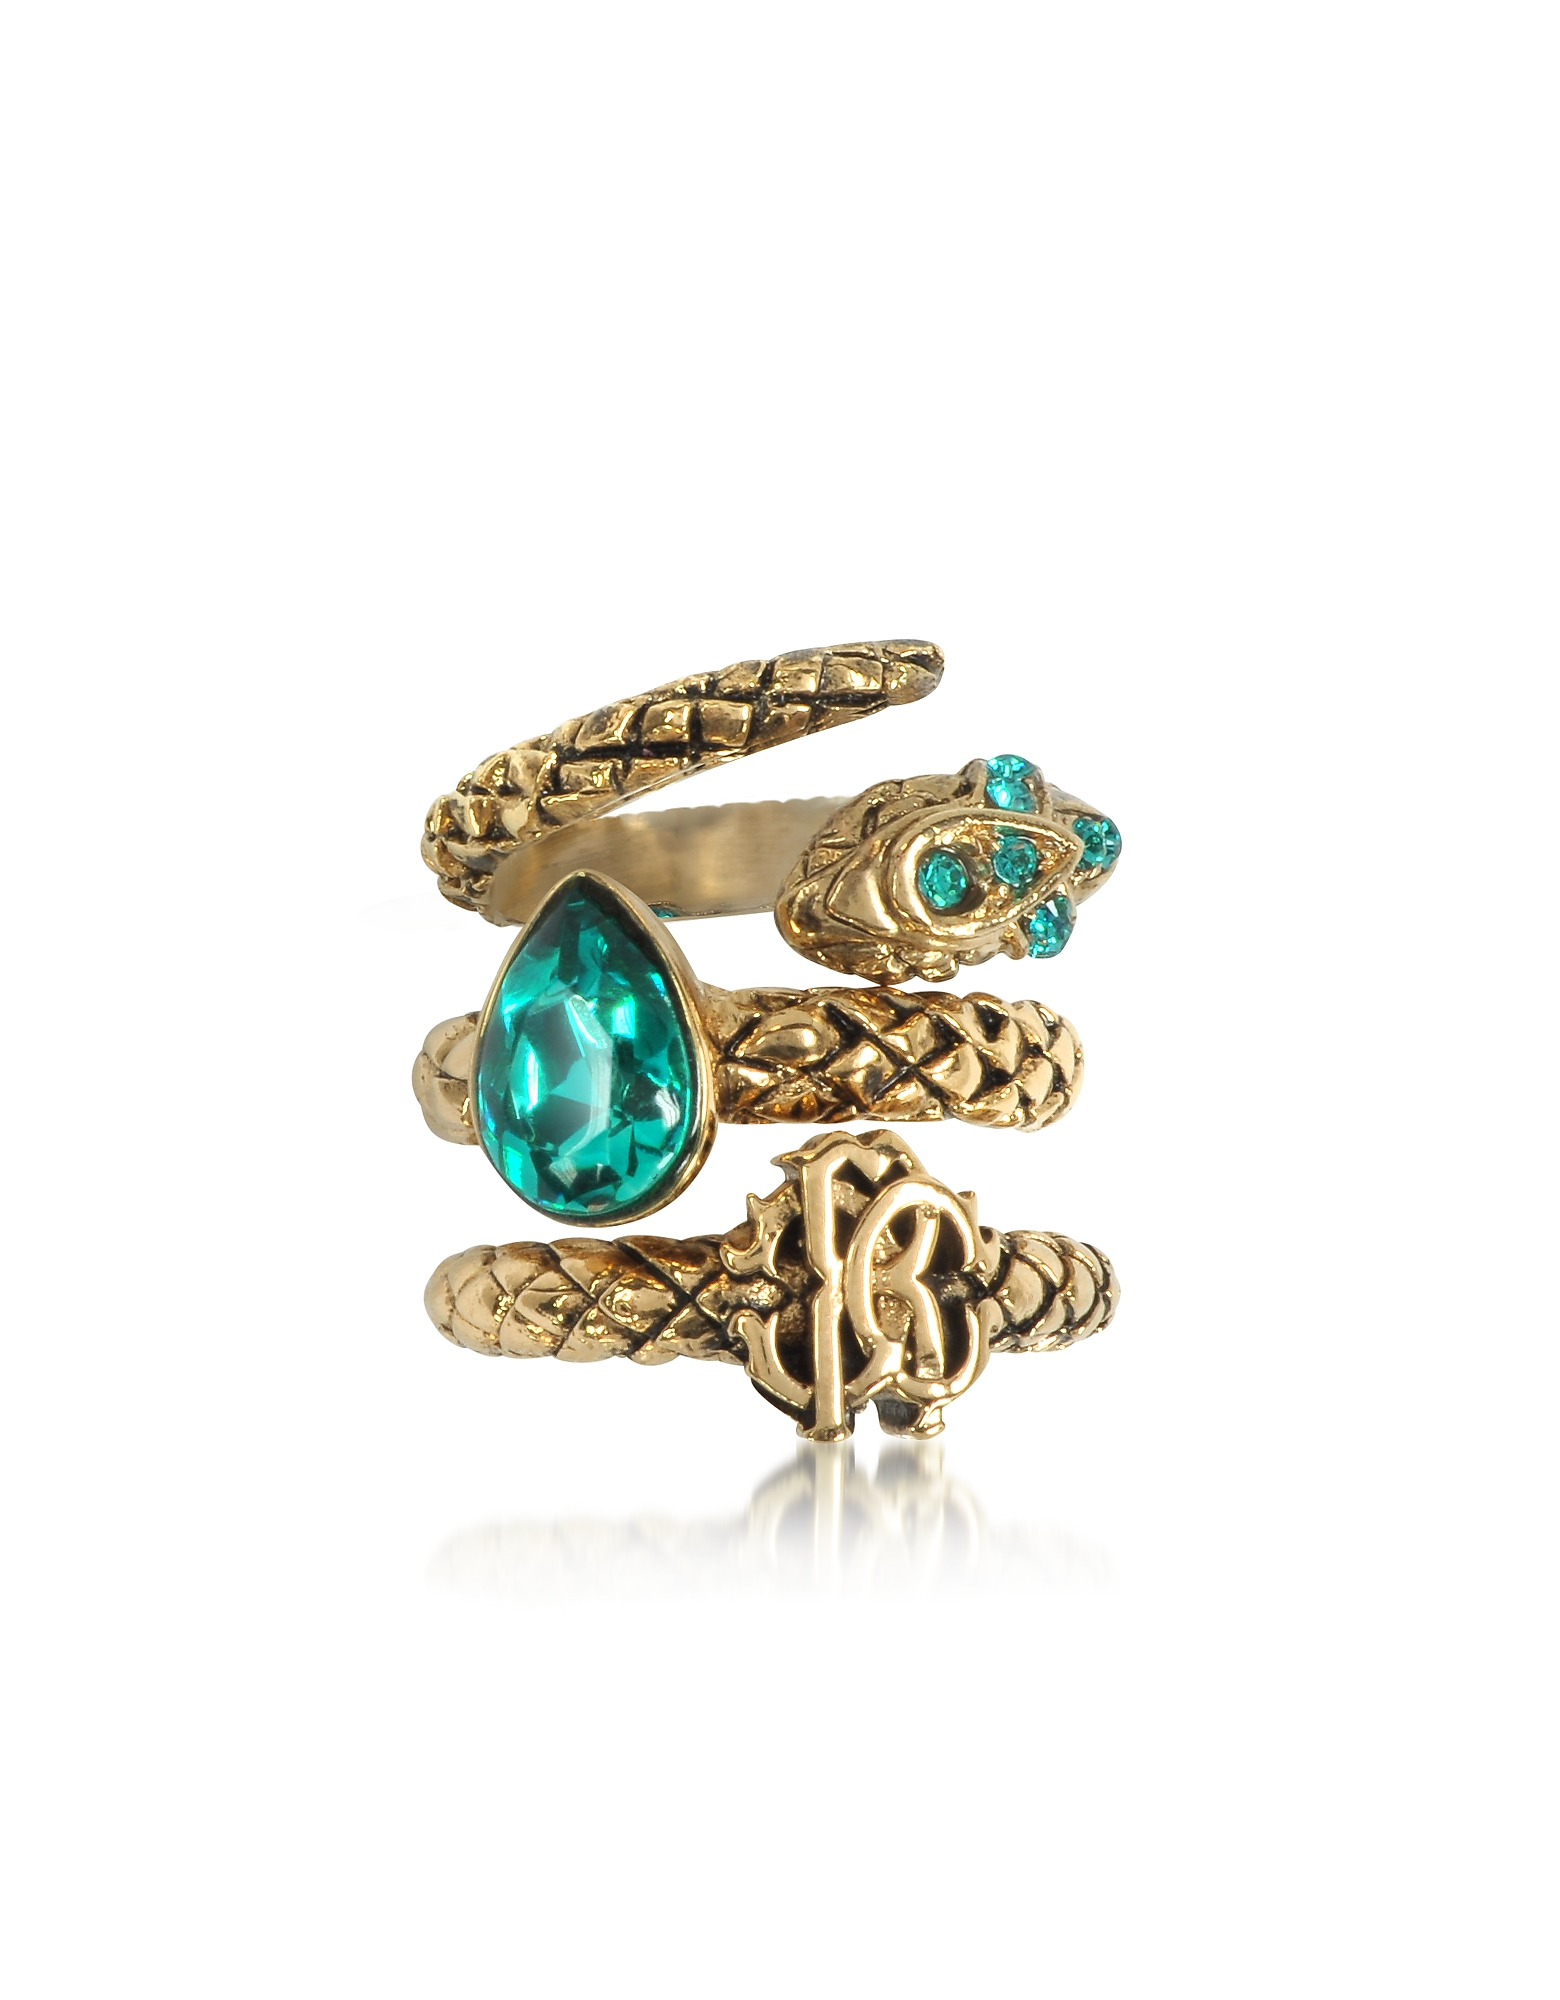 Roberto Cavalli Rings, Goldtone Metal Triple Ring w/Blue Crystals